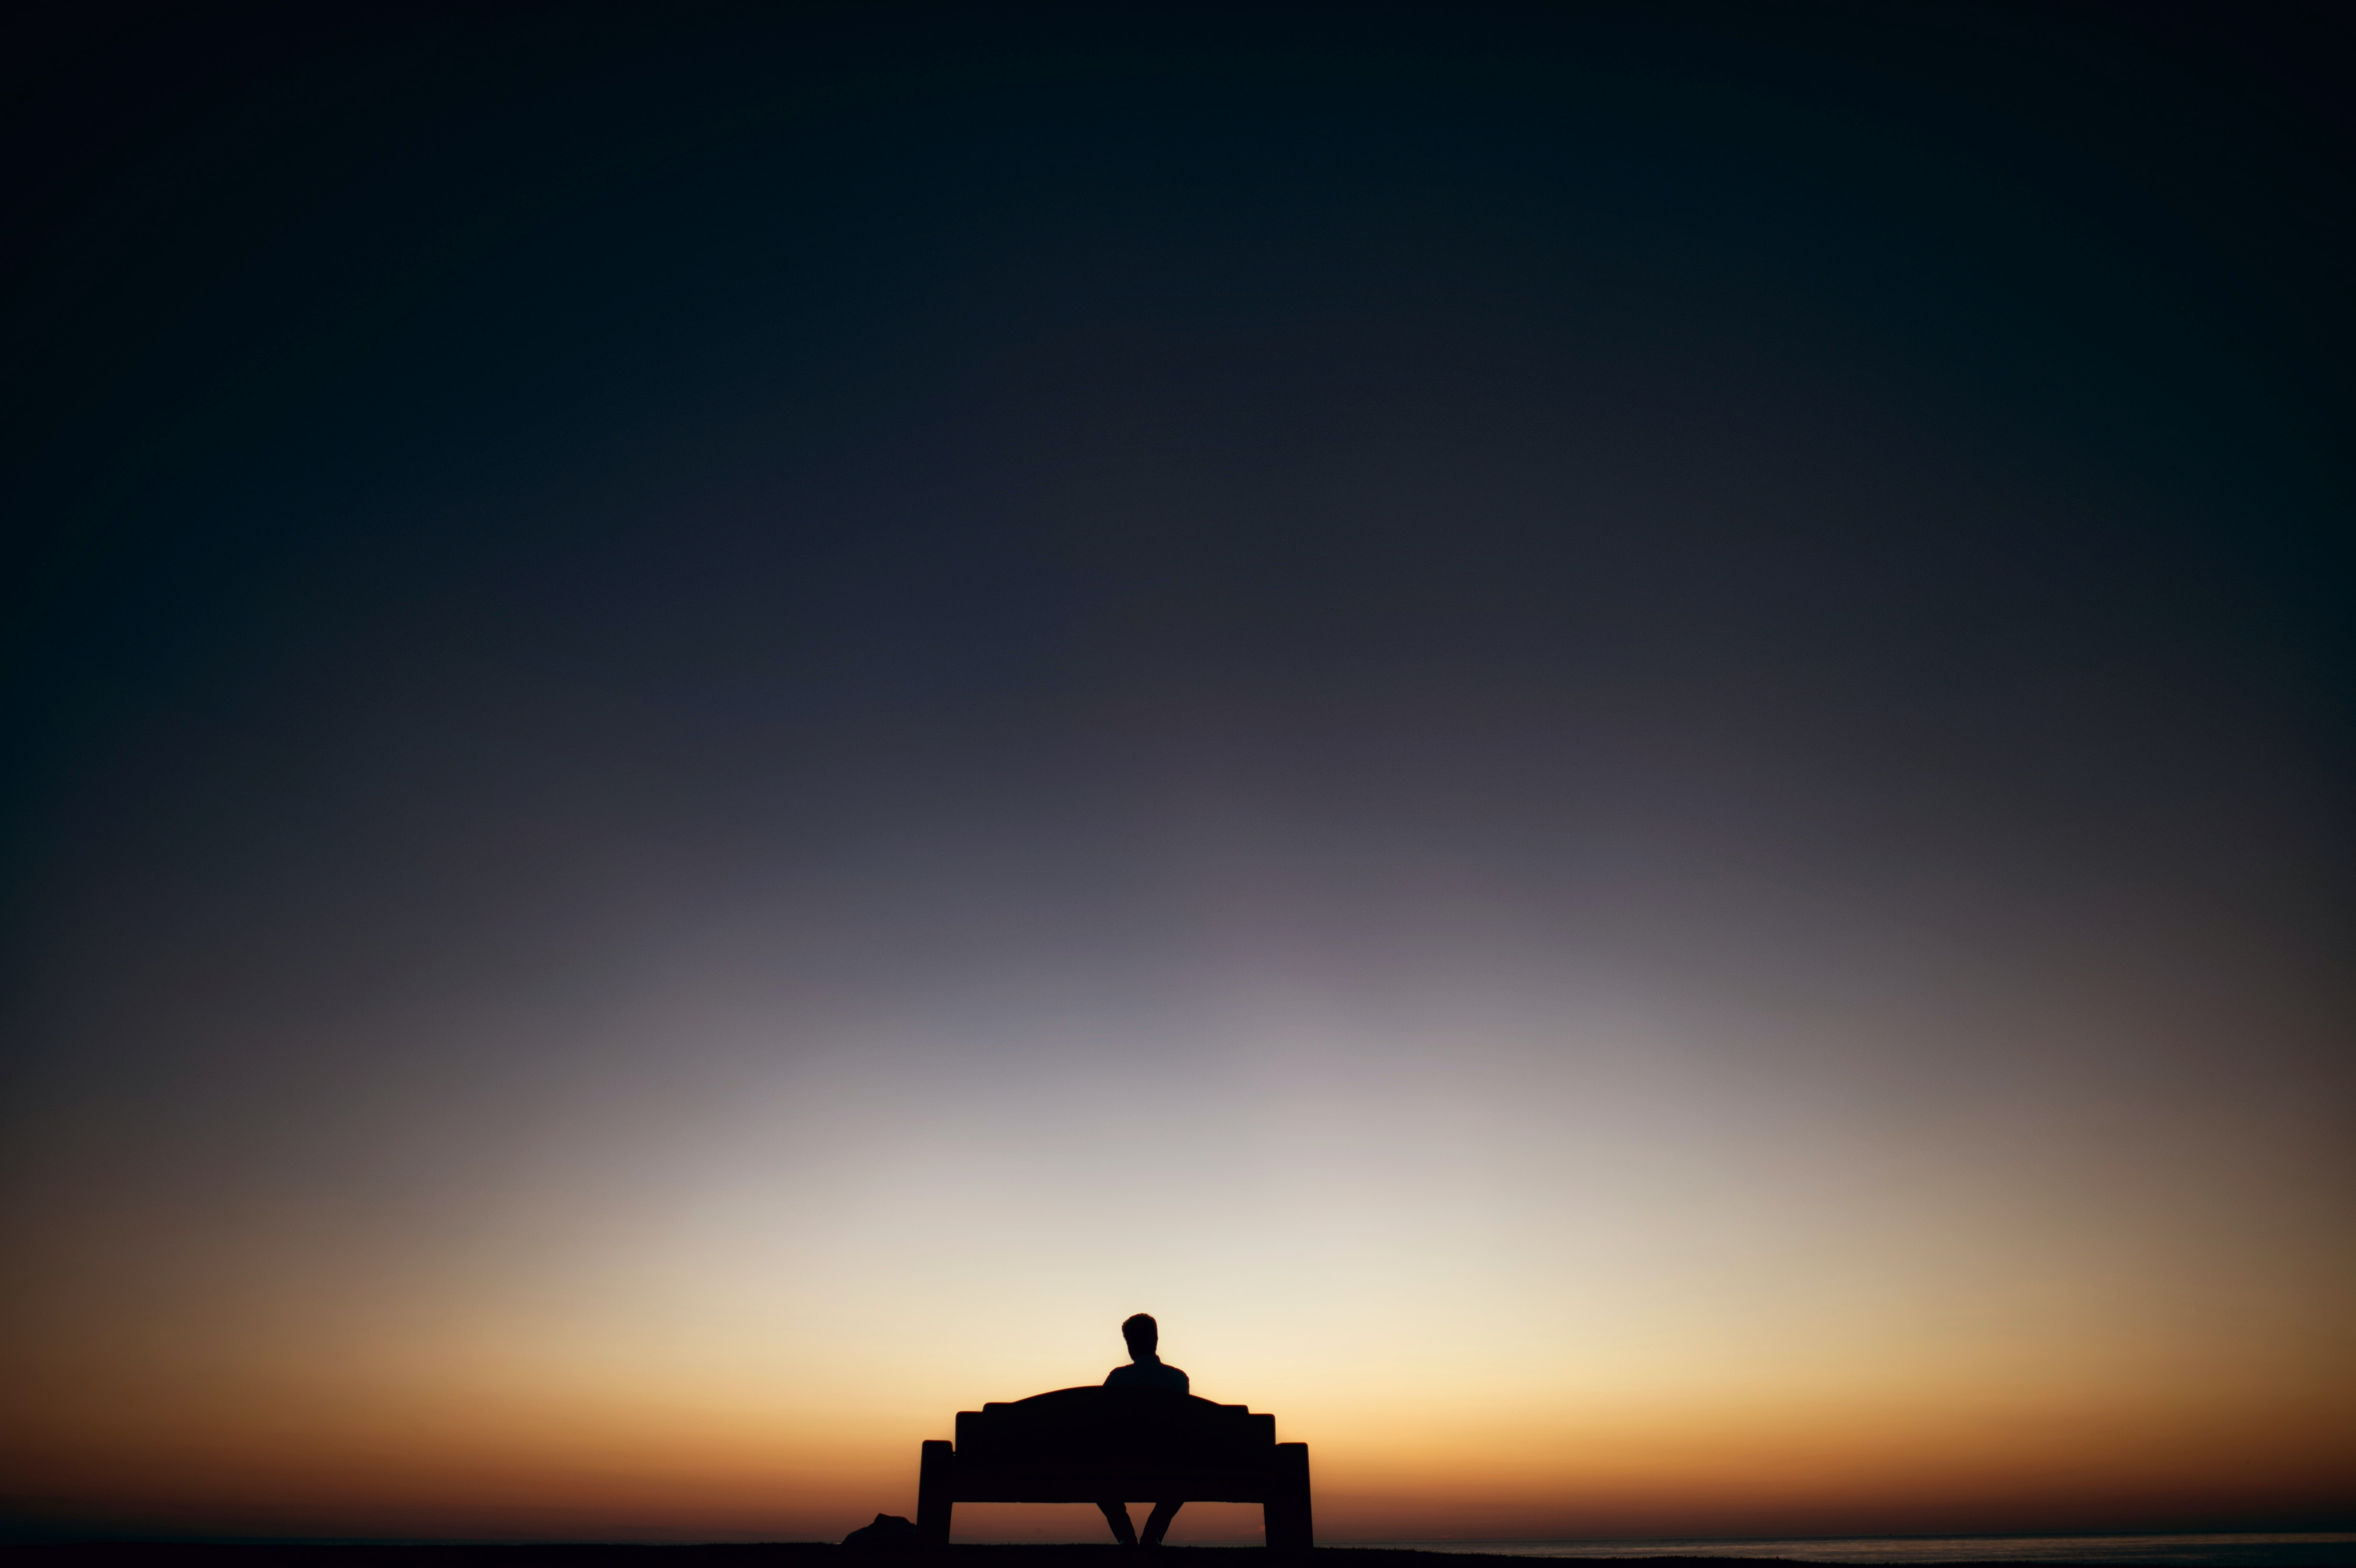 Sunset silhouette of a man sitting on bench alone in San Diego